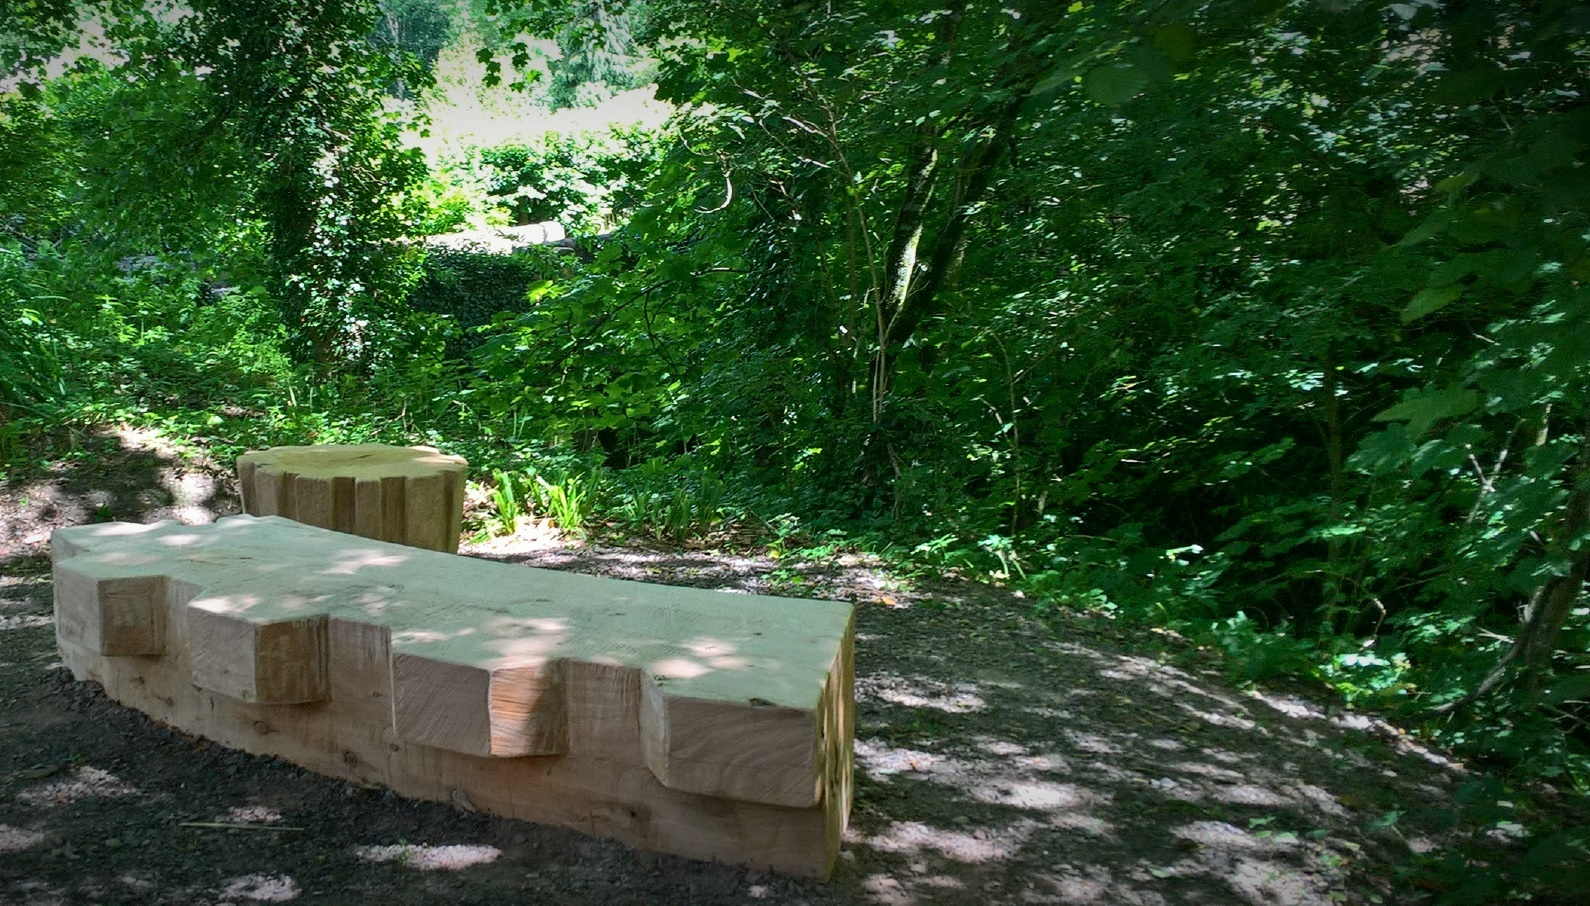 New seating and animal homes installed along the River Lim Path